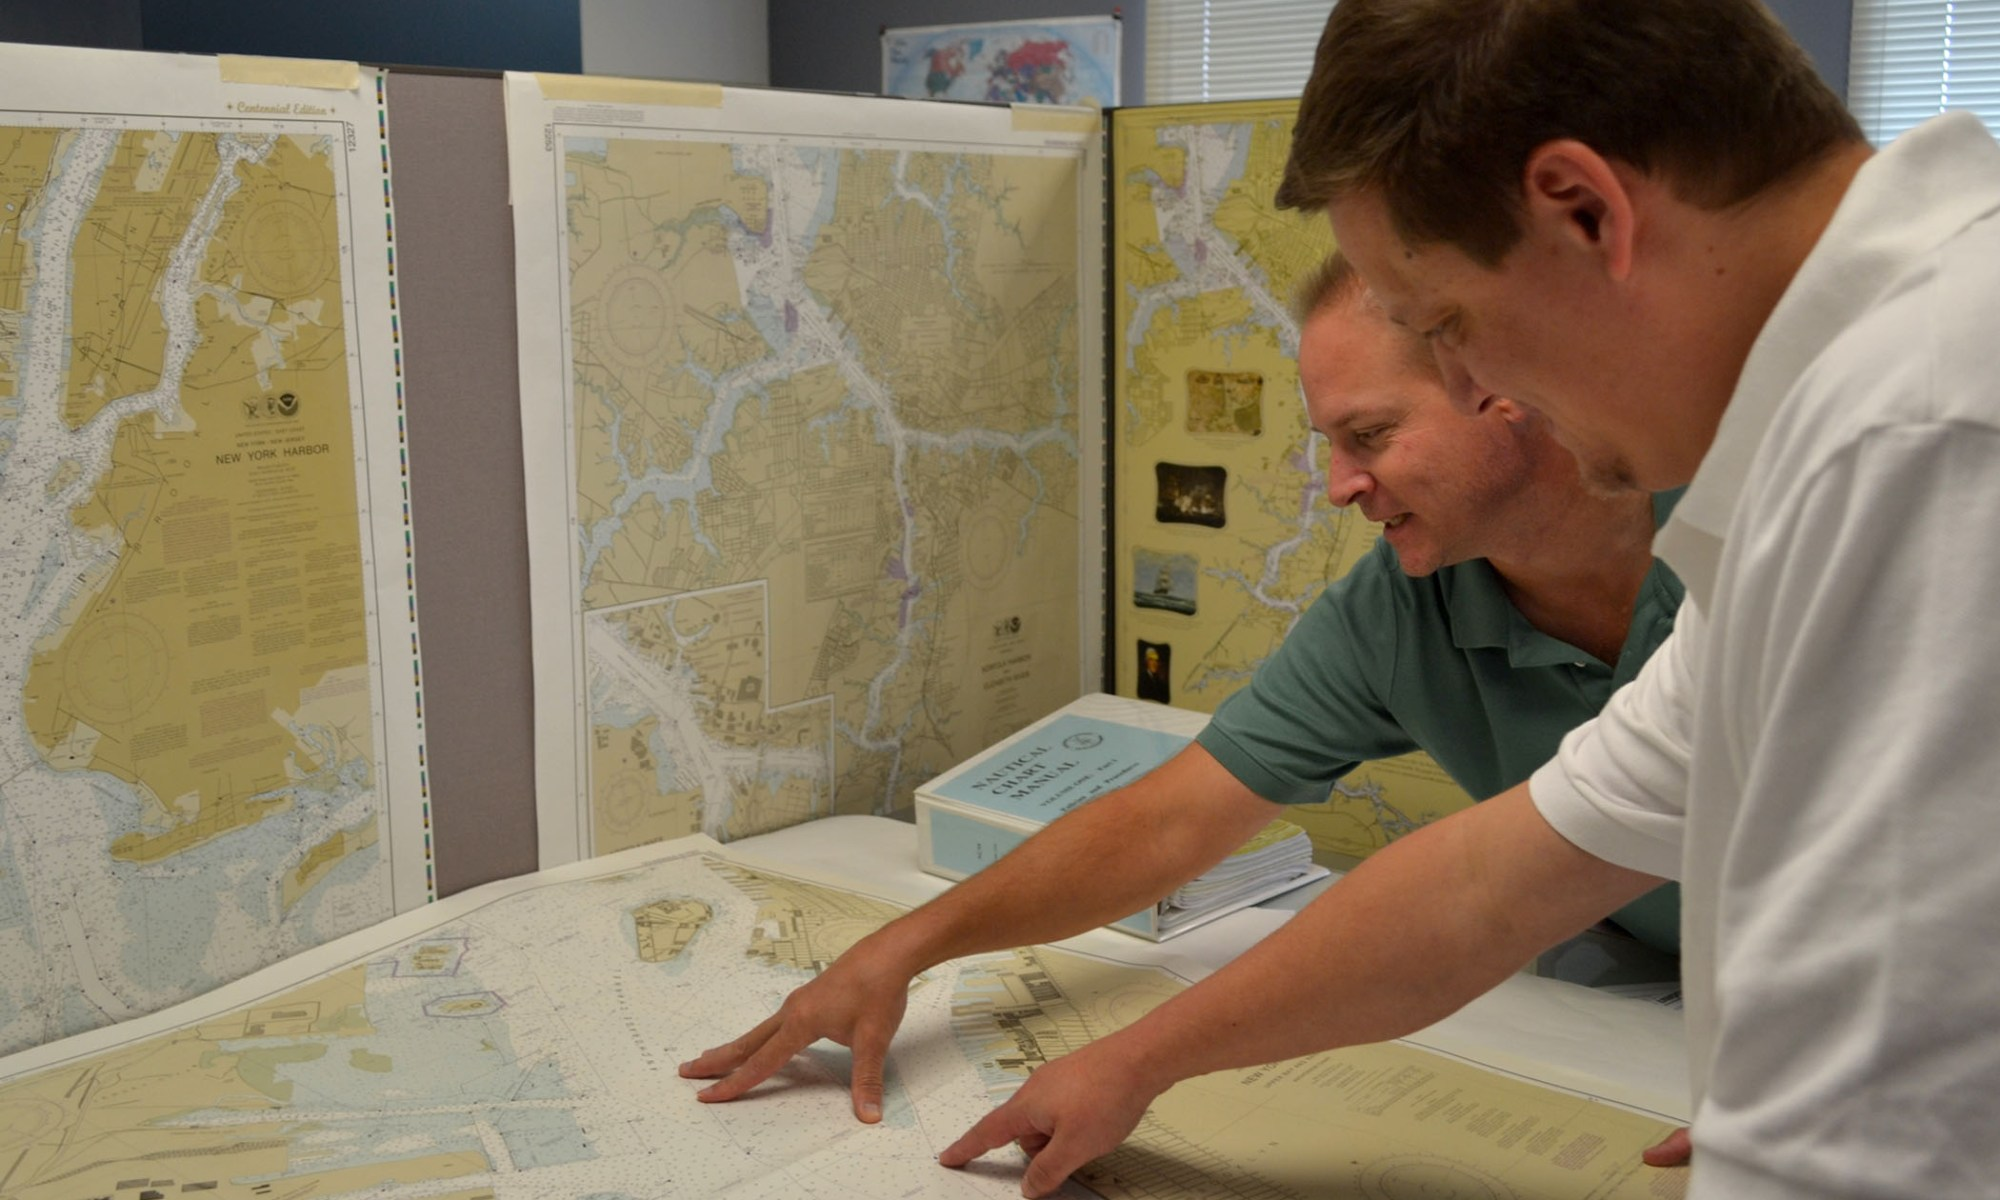 NOAA cartographers review a traditional printed nautical chart.